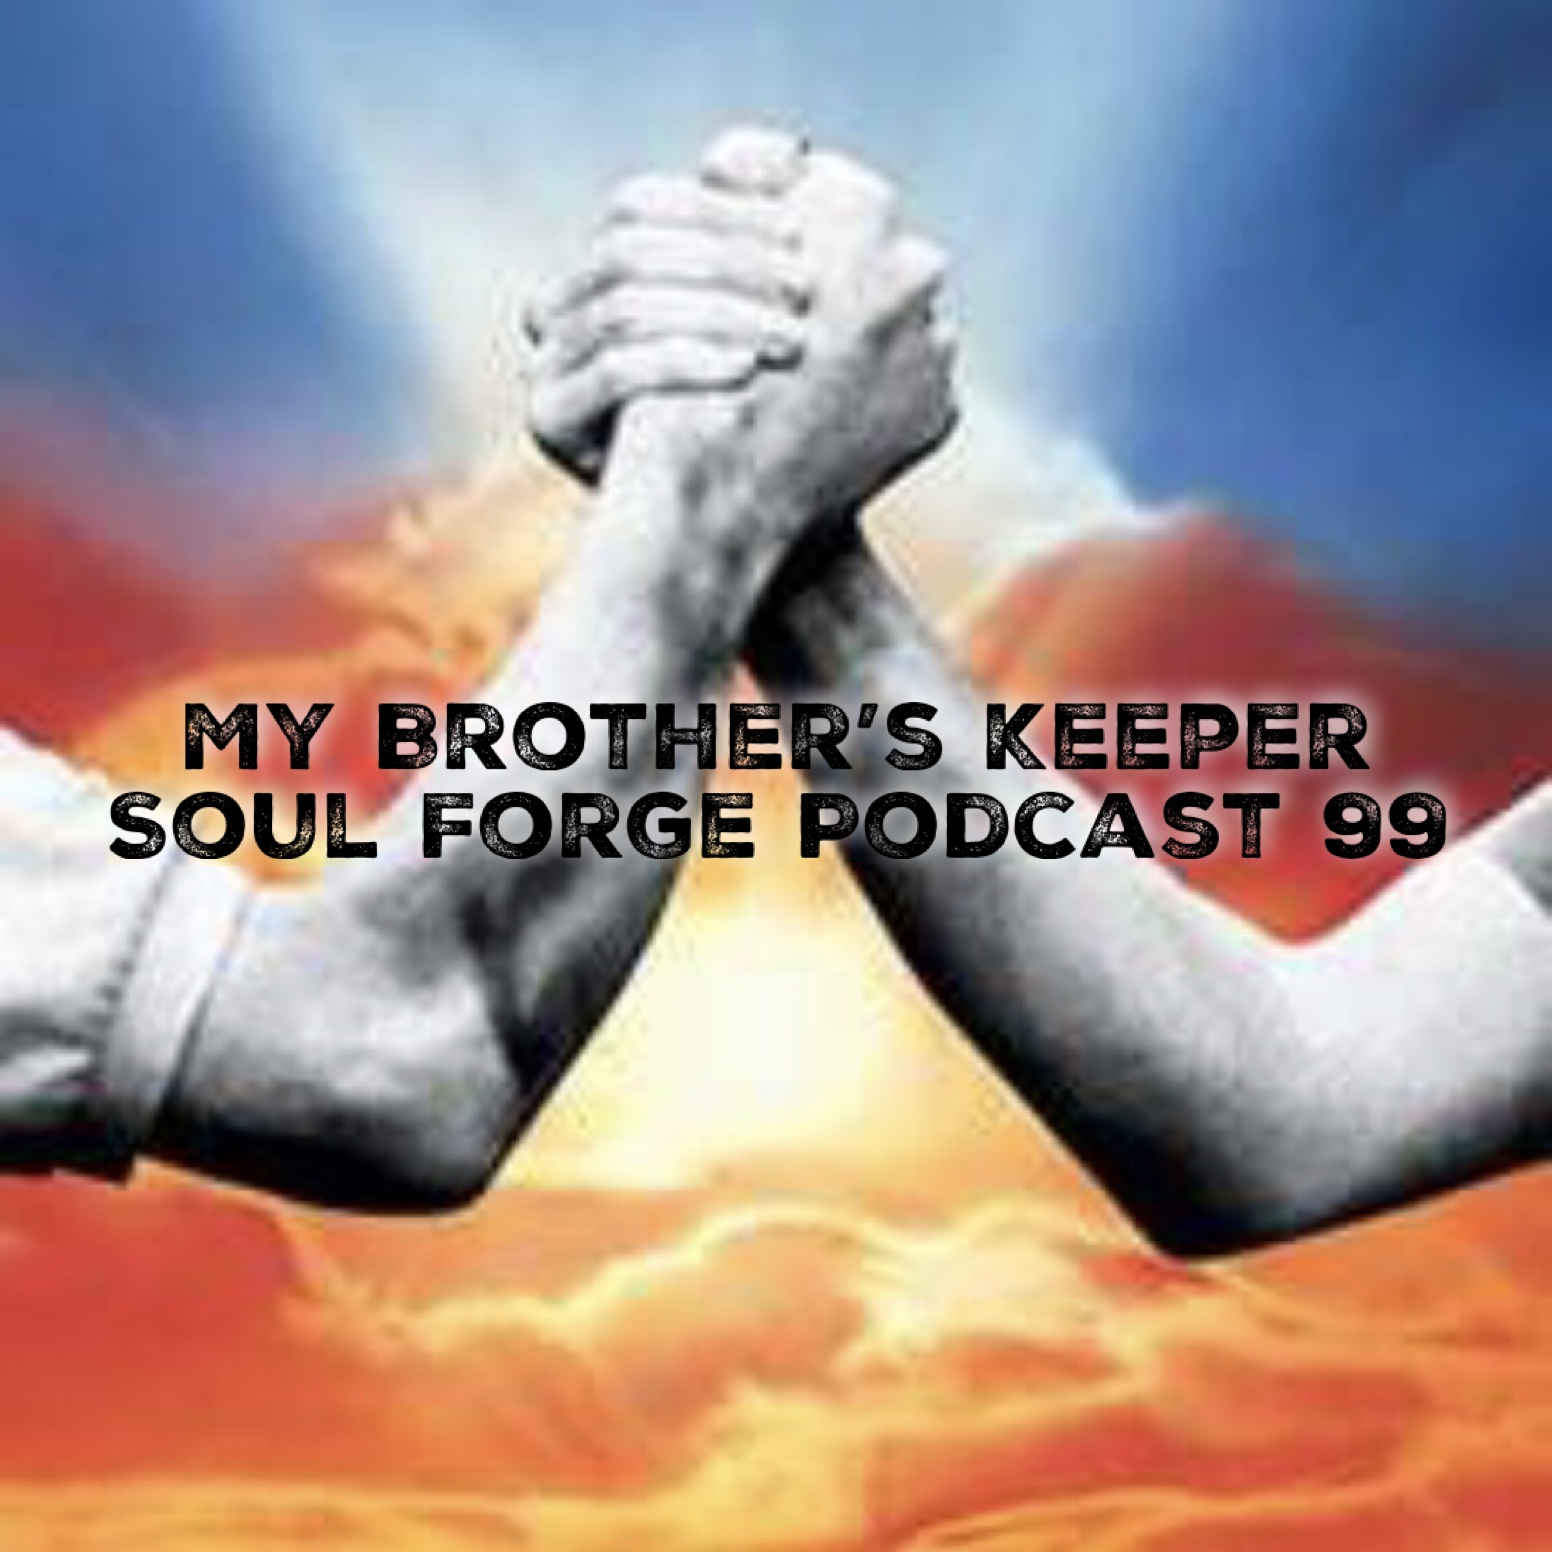 My Brother's Keeper - 99